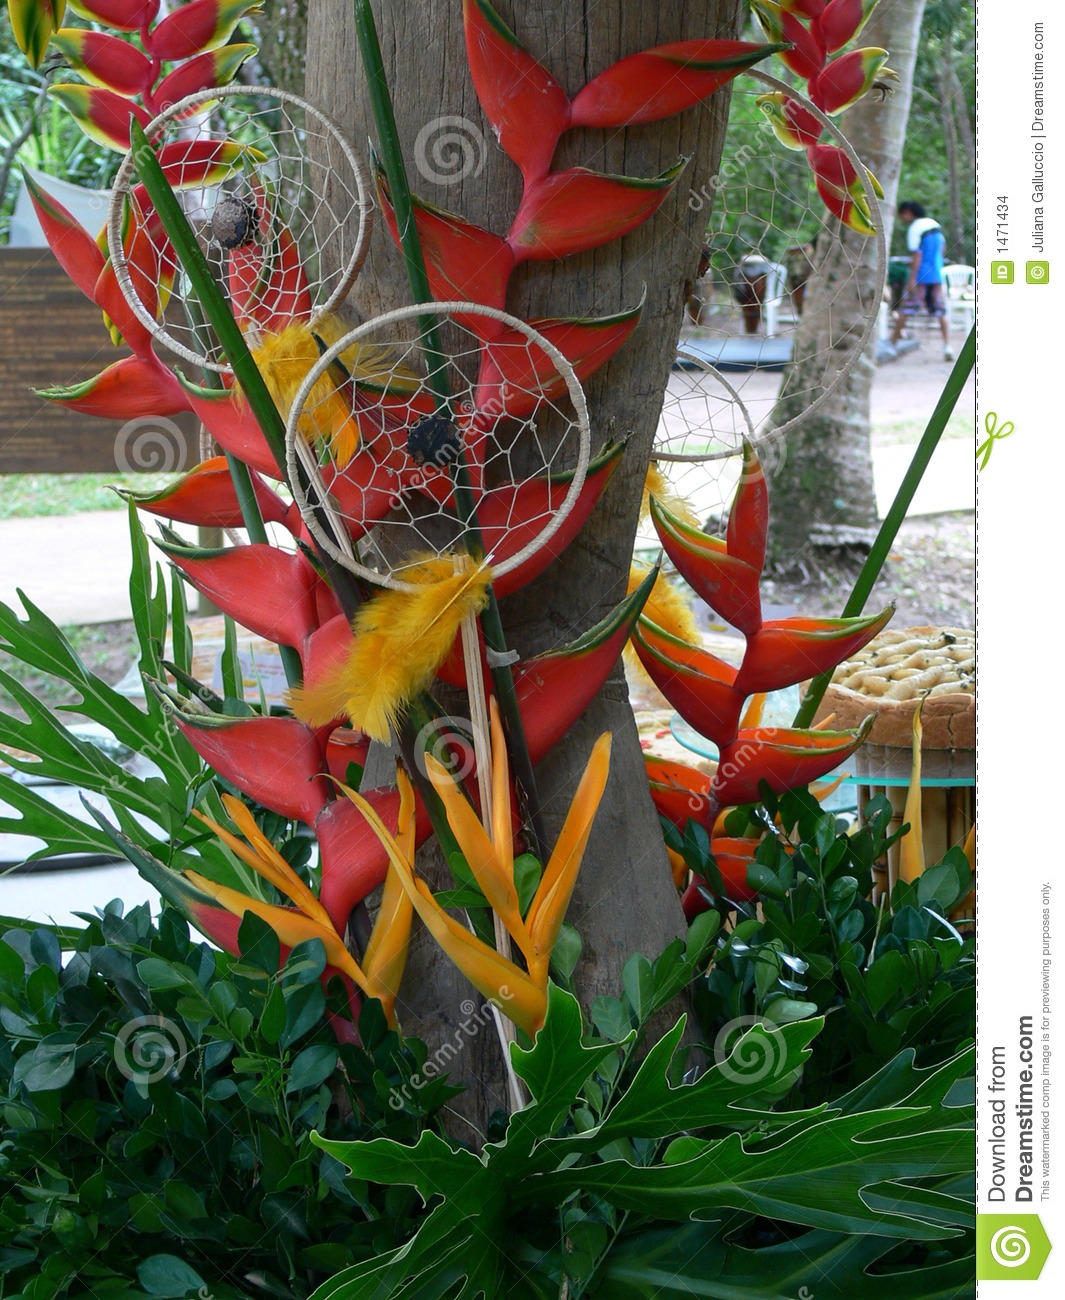 Tropical party decorations stock photo image of outdoor for Tropical outdoor decorating ideas